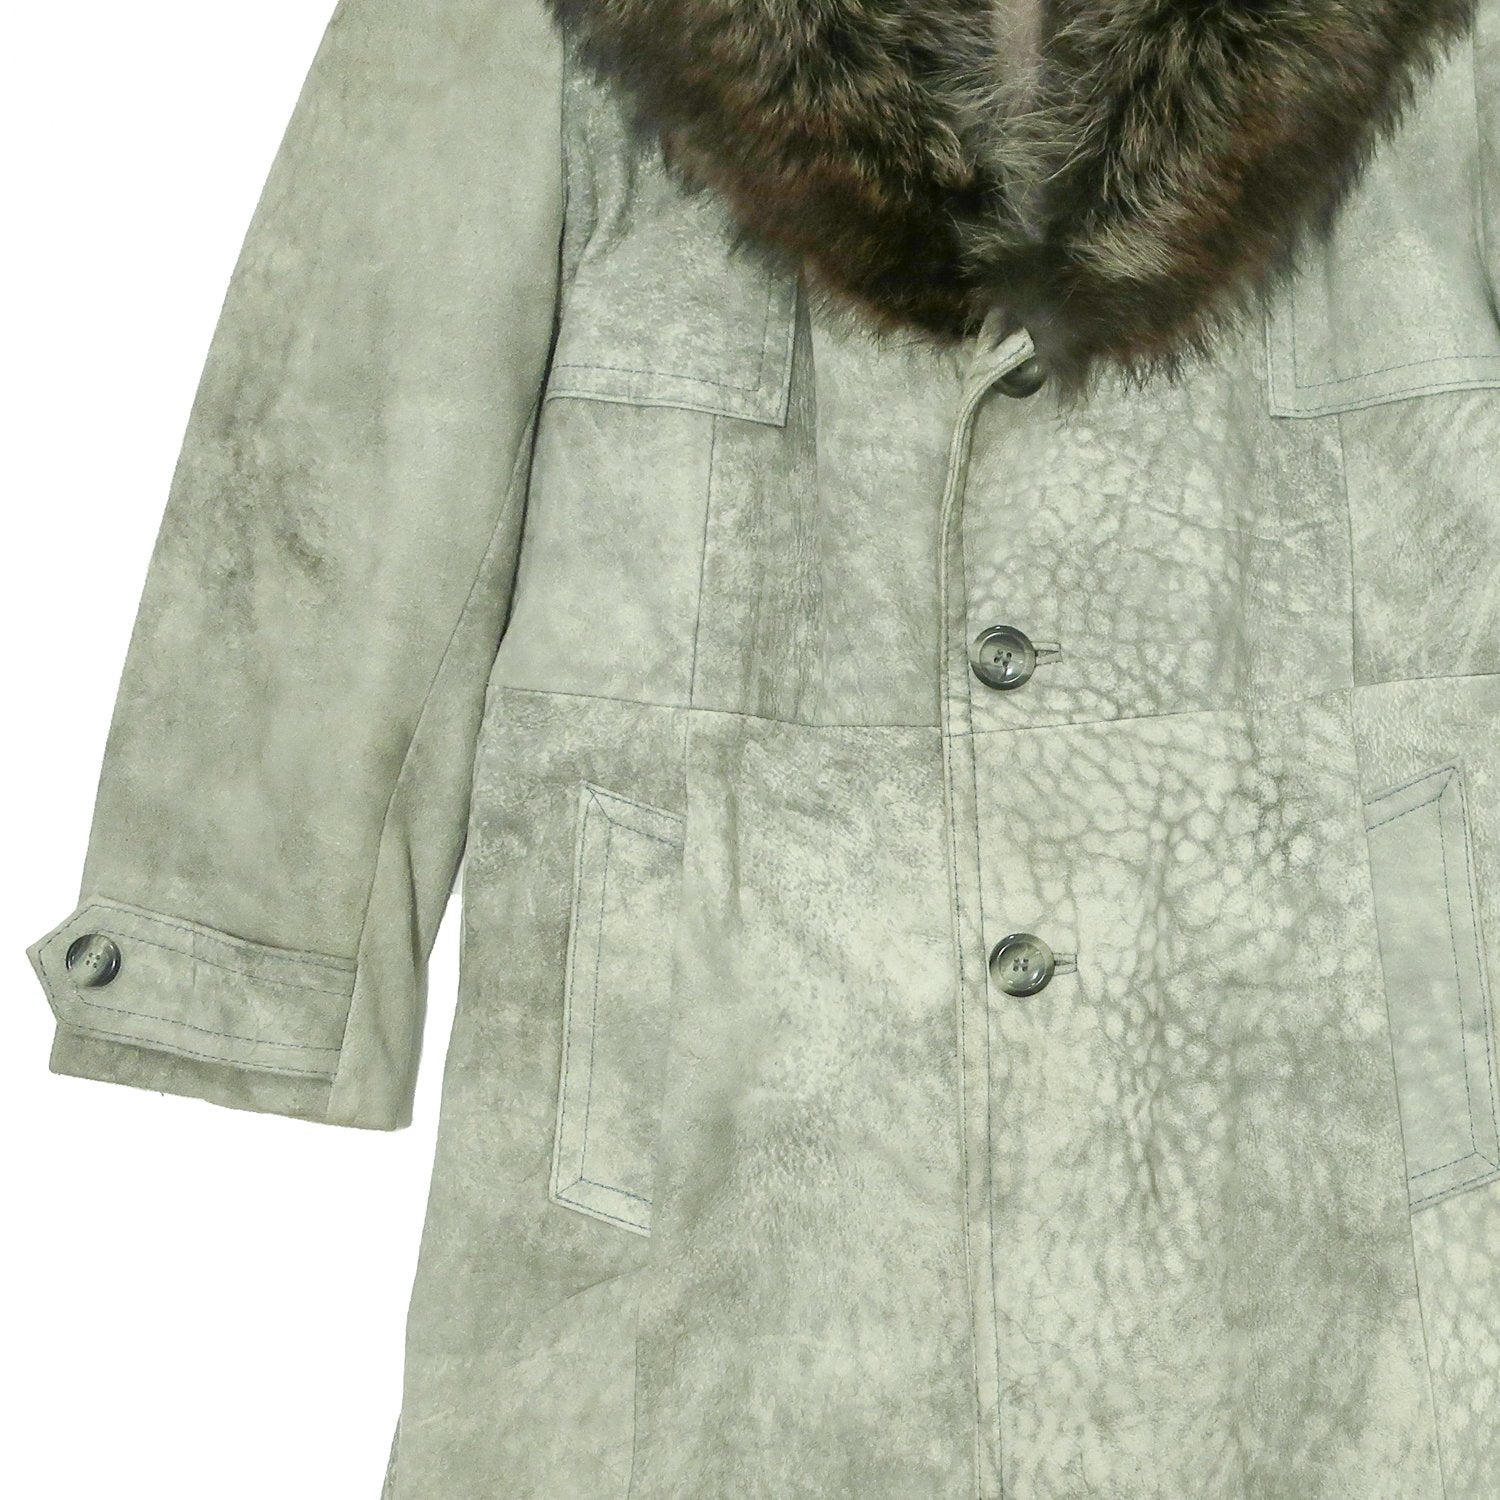 Second Room Vintage Clothing. Vintage 1970s men's gray coat with fur collar. The upper portion of this jacket is lined in a polyester type fabric, while the bottom half is lined in plaid wool. It has a 3 button front, two front pockets, one inside pocket, and one button detail on each cuff. Free Shipping on all orders within North America.